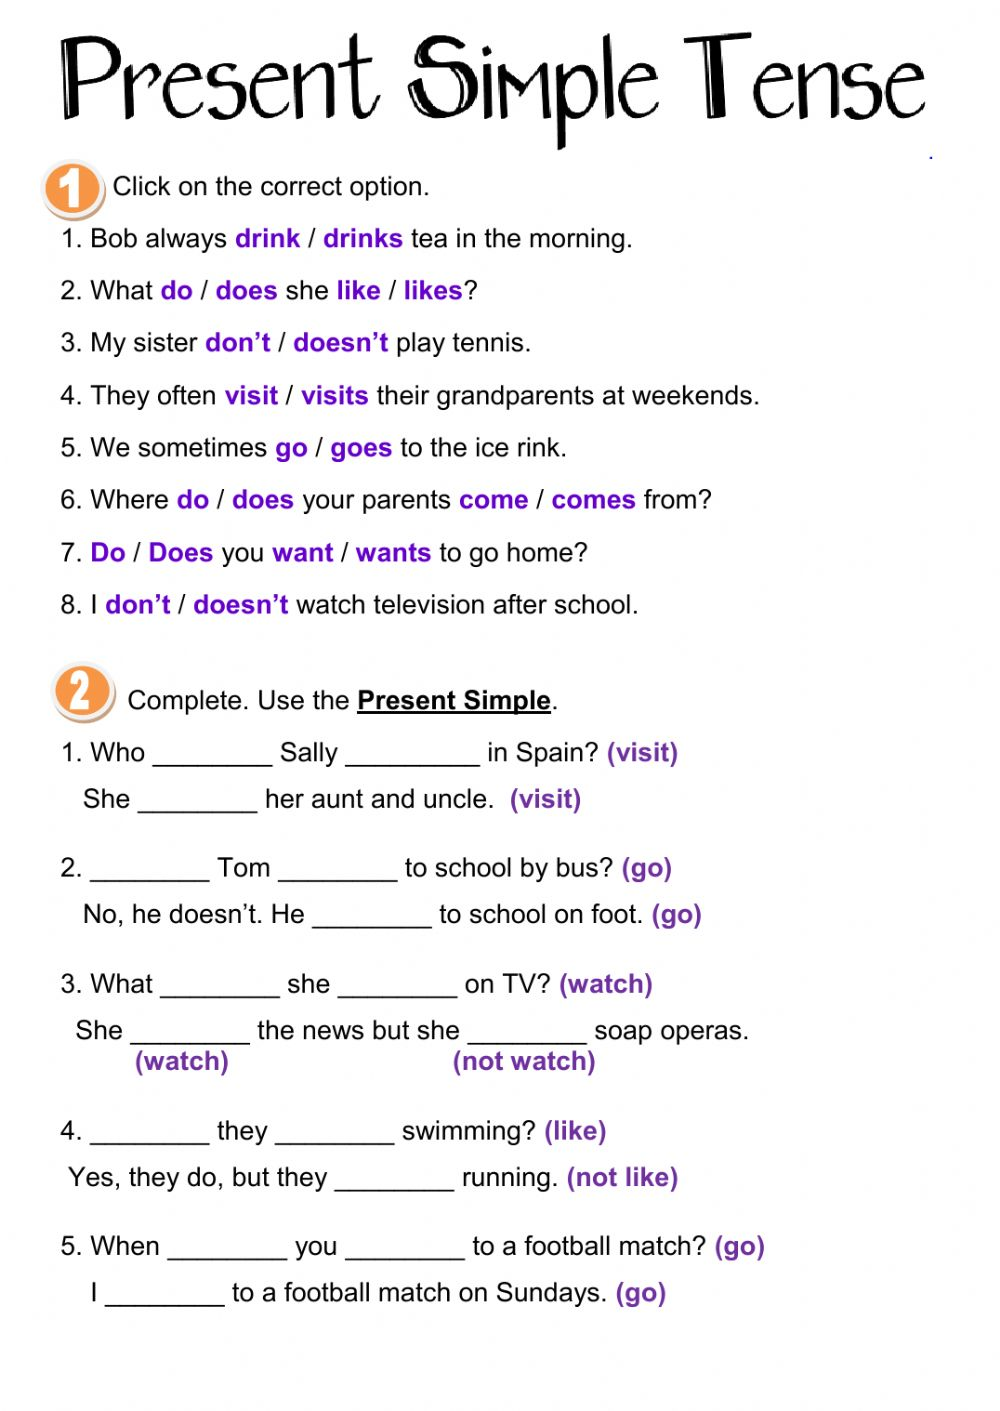 Present Simple Tense Interactive Worksheet